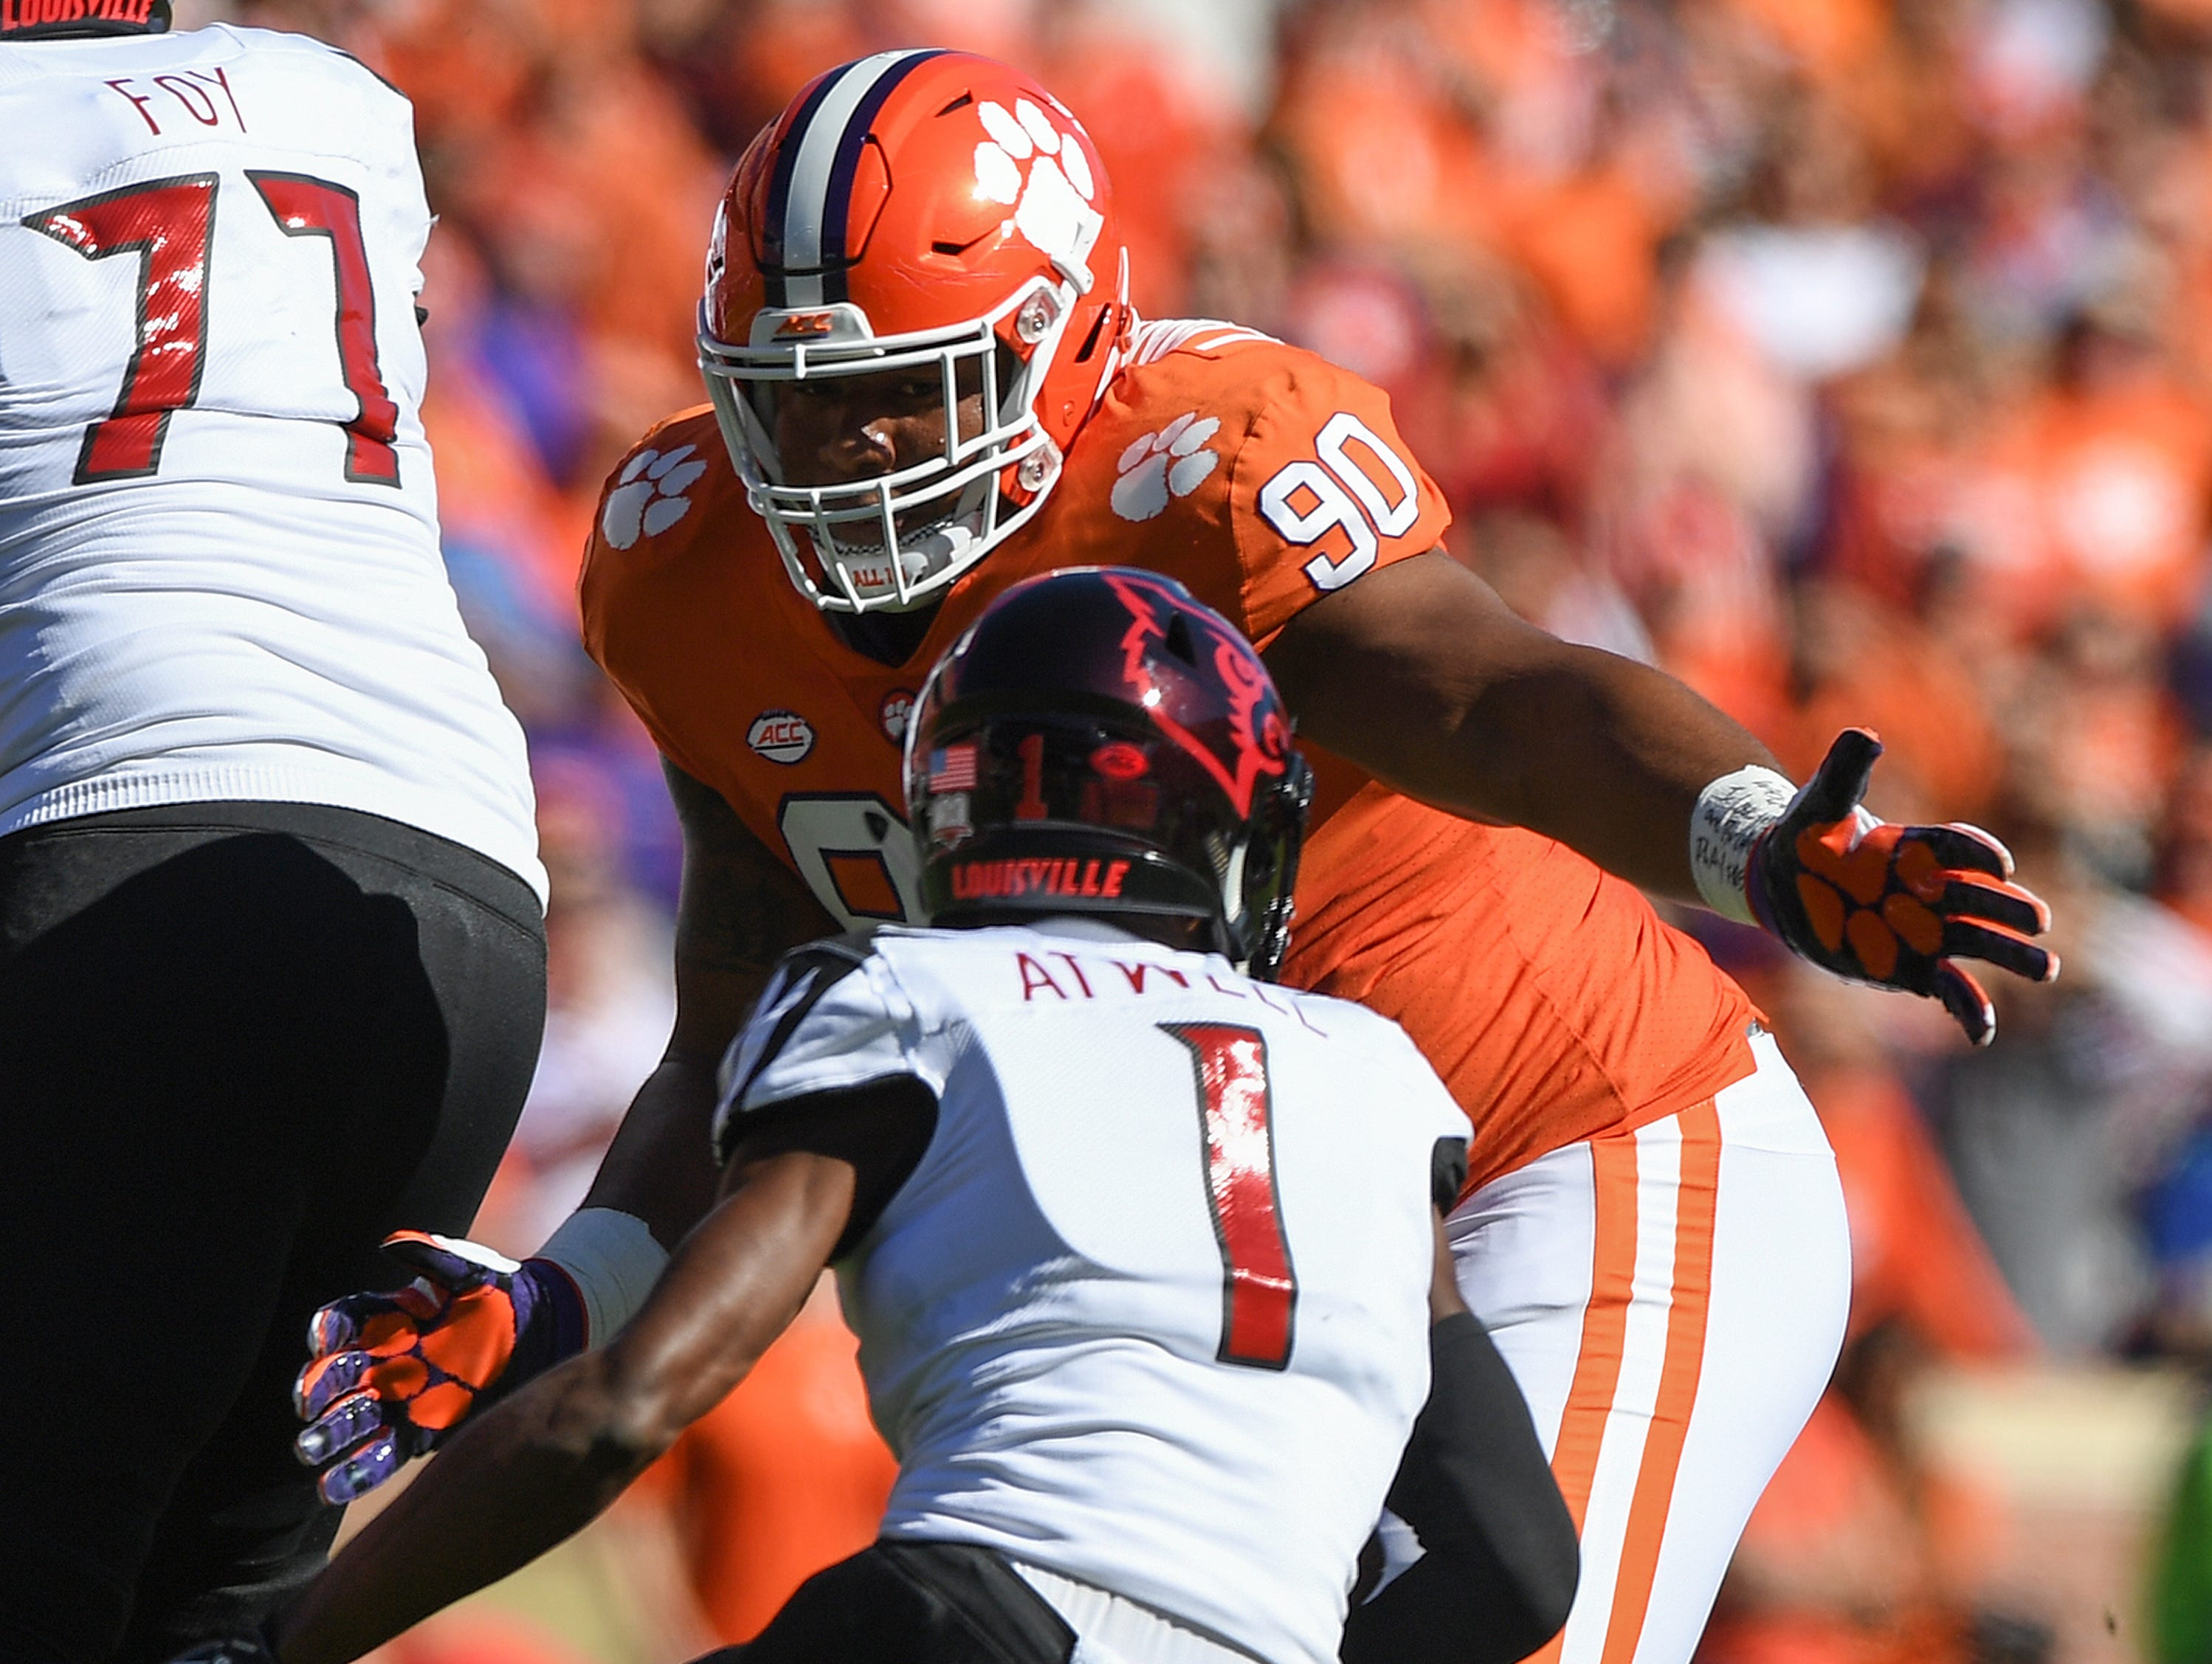 Clemson defensive lineman Dexter Lawrence (90) bears down on Louisville wide receiver Chatarius Atwell (1) during the 1st quarter Saturday, November 3, 2018 at Clemson's Memorial Stadium.